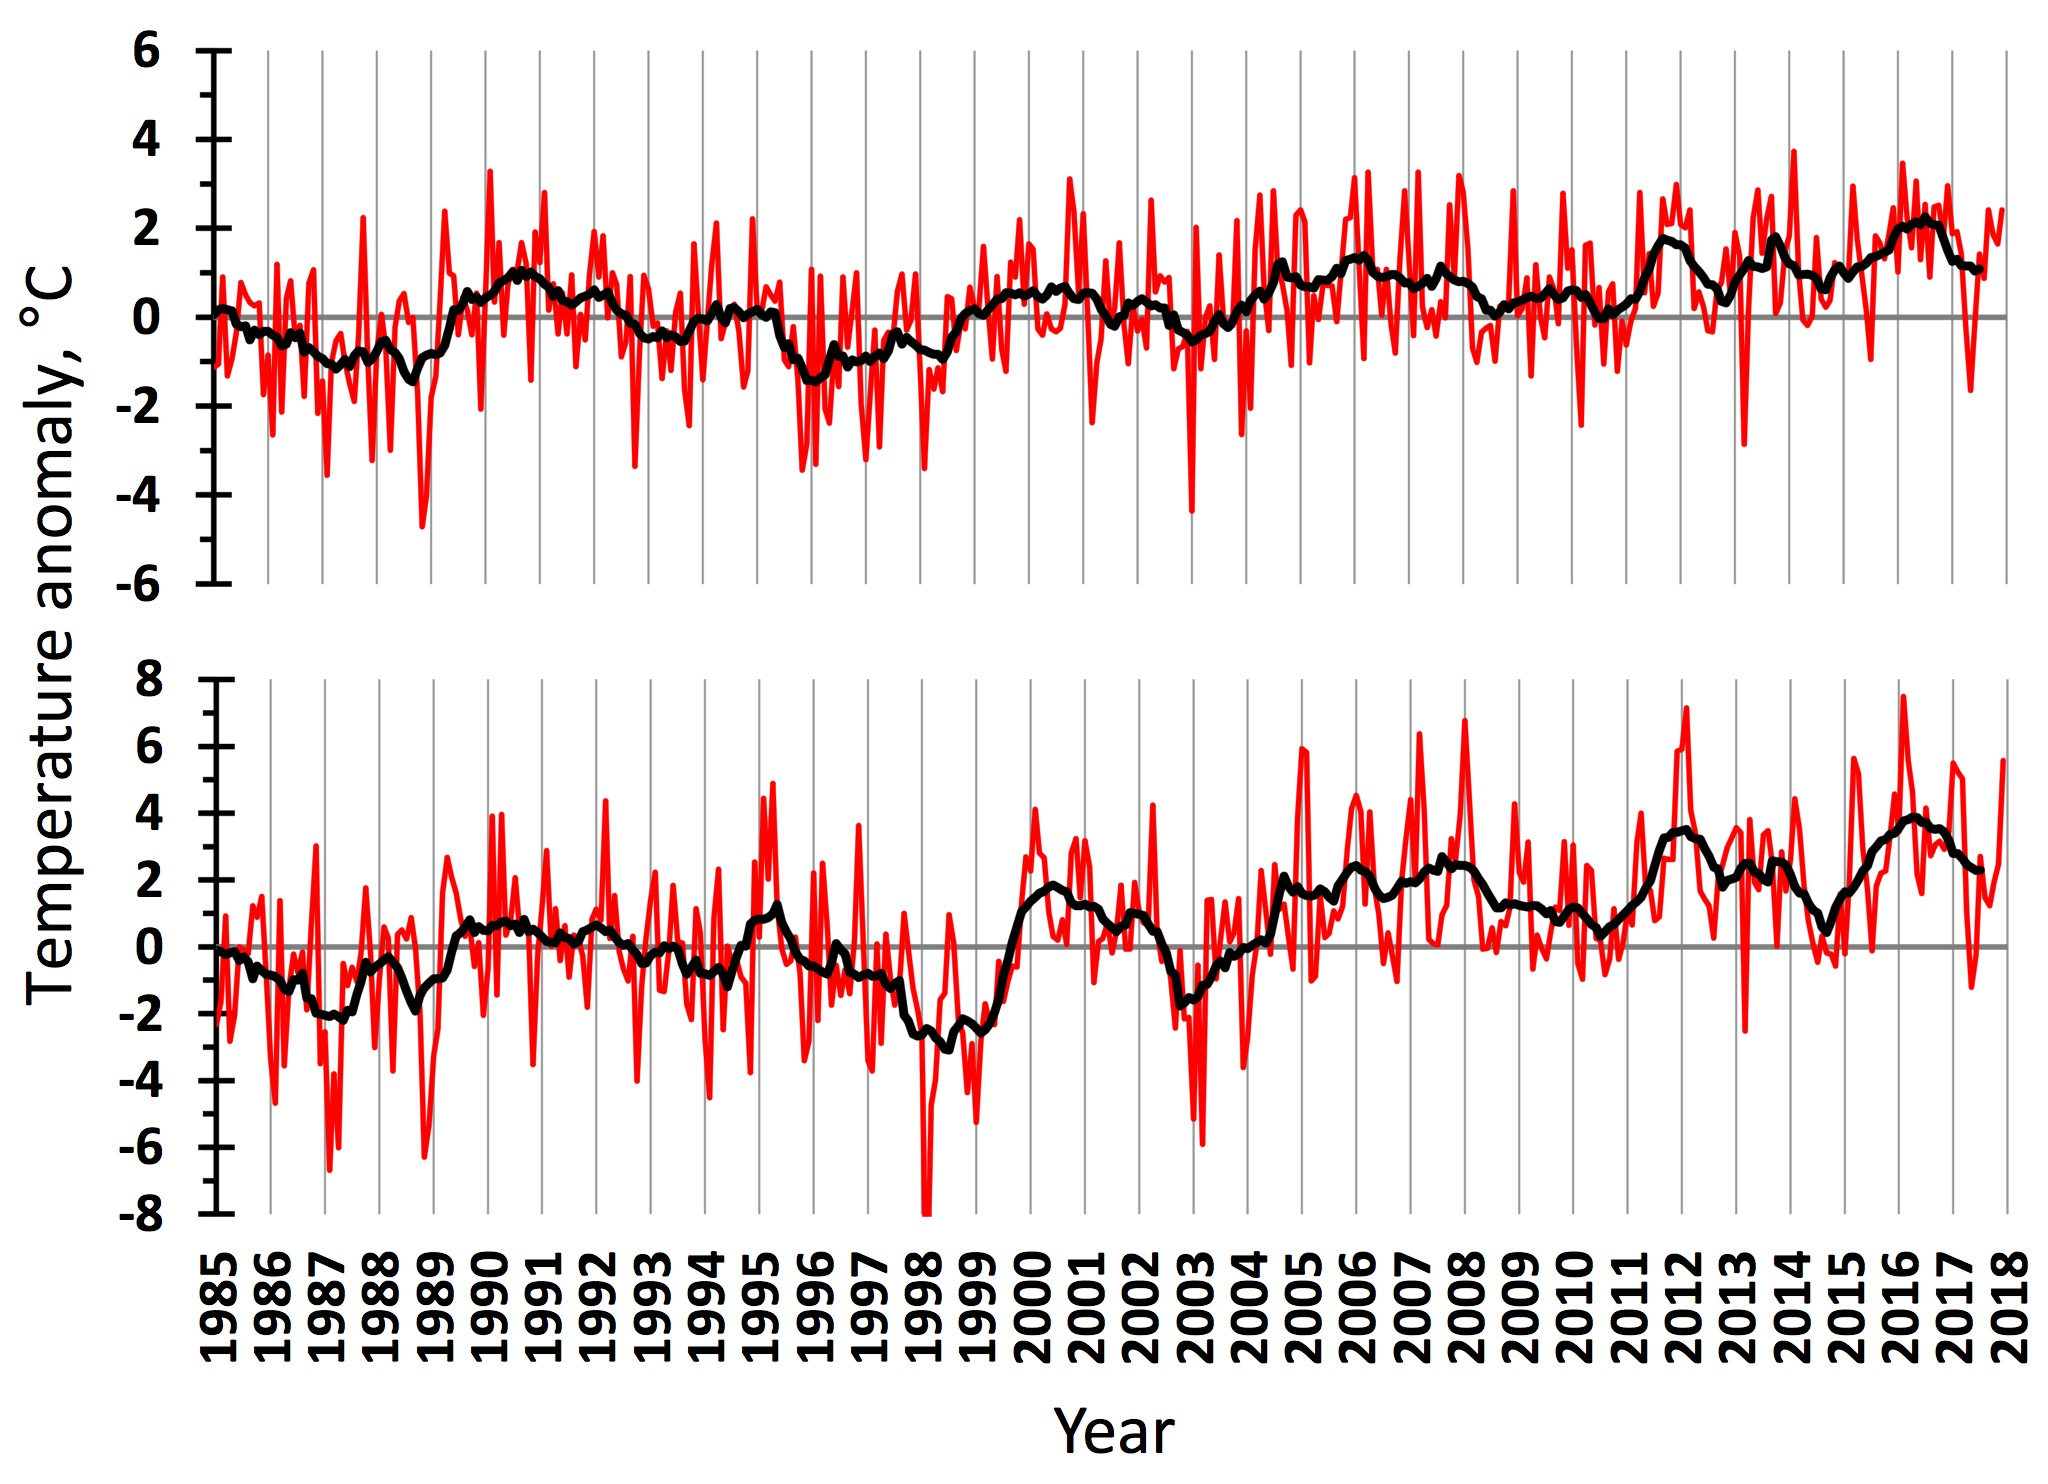 Figure 3.1.2. Air temperature anomalies in the western (upper) and eastern (lower) Barents Sea in 1985–2017. The red line shows monthly values, the black one – 11-month running means.